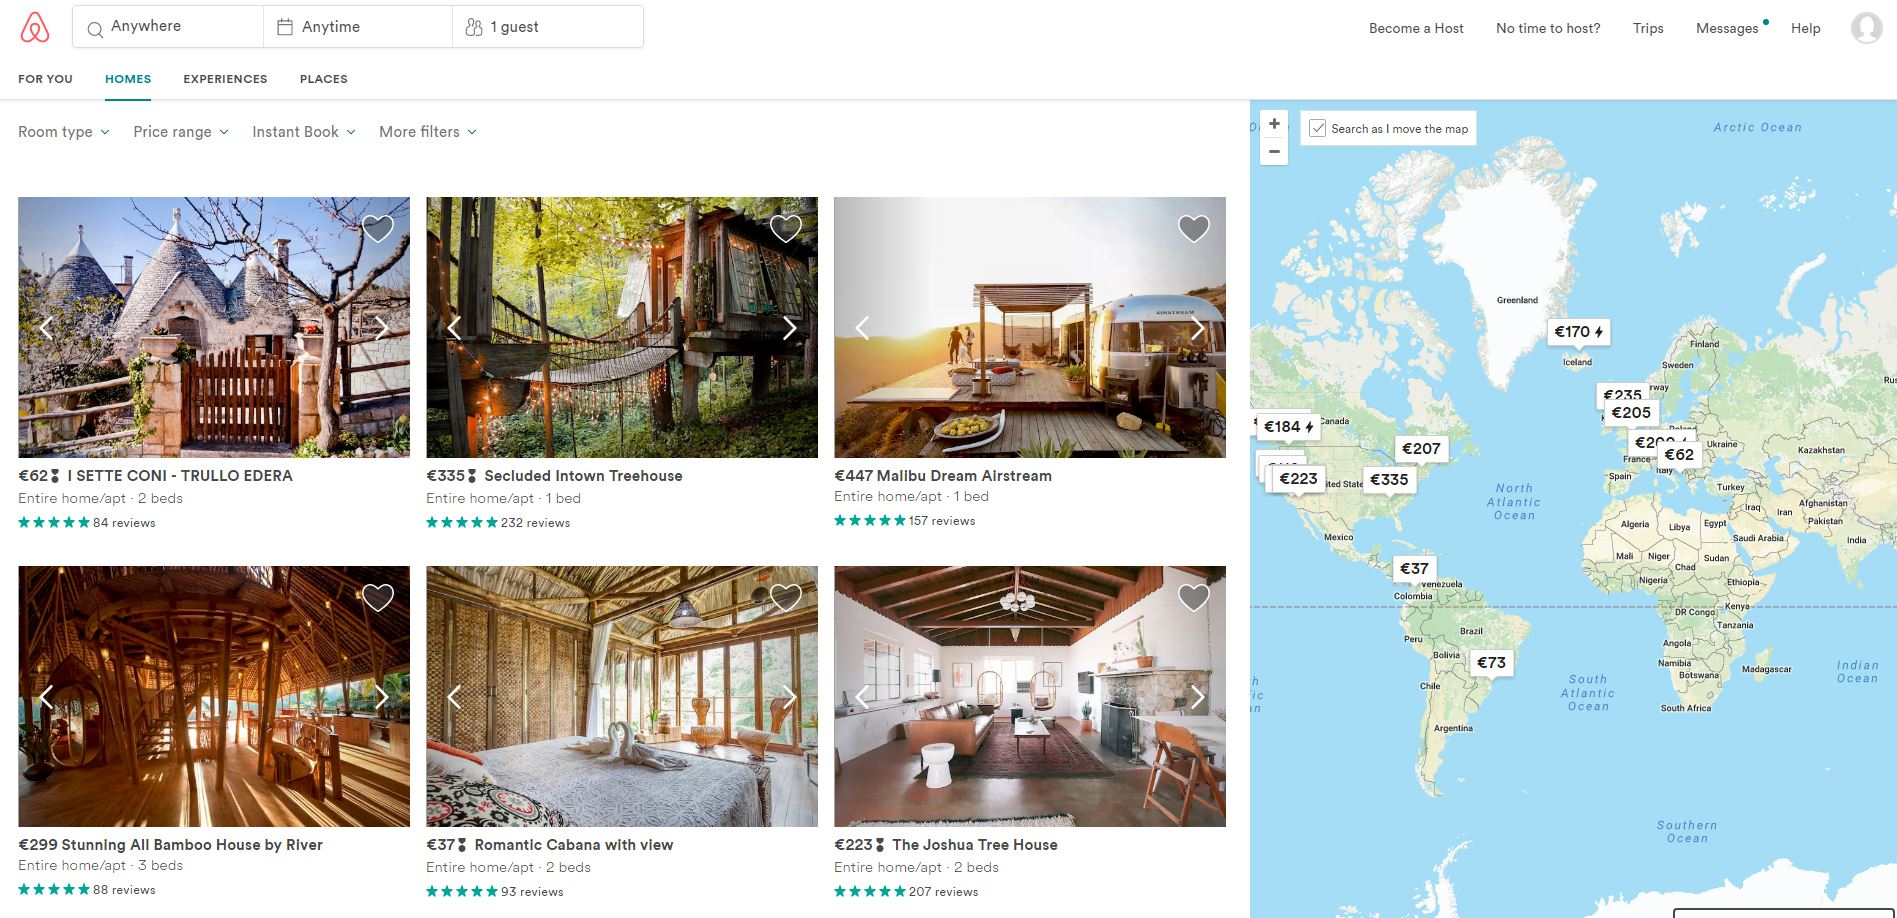 Airbnb website and offers map